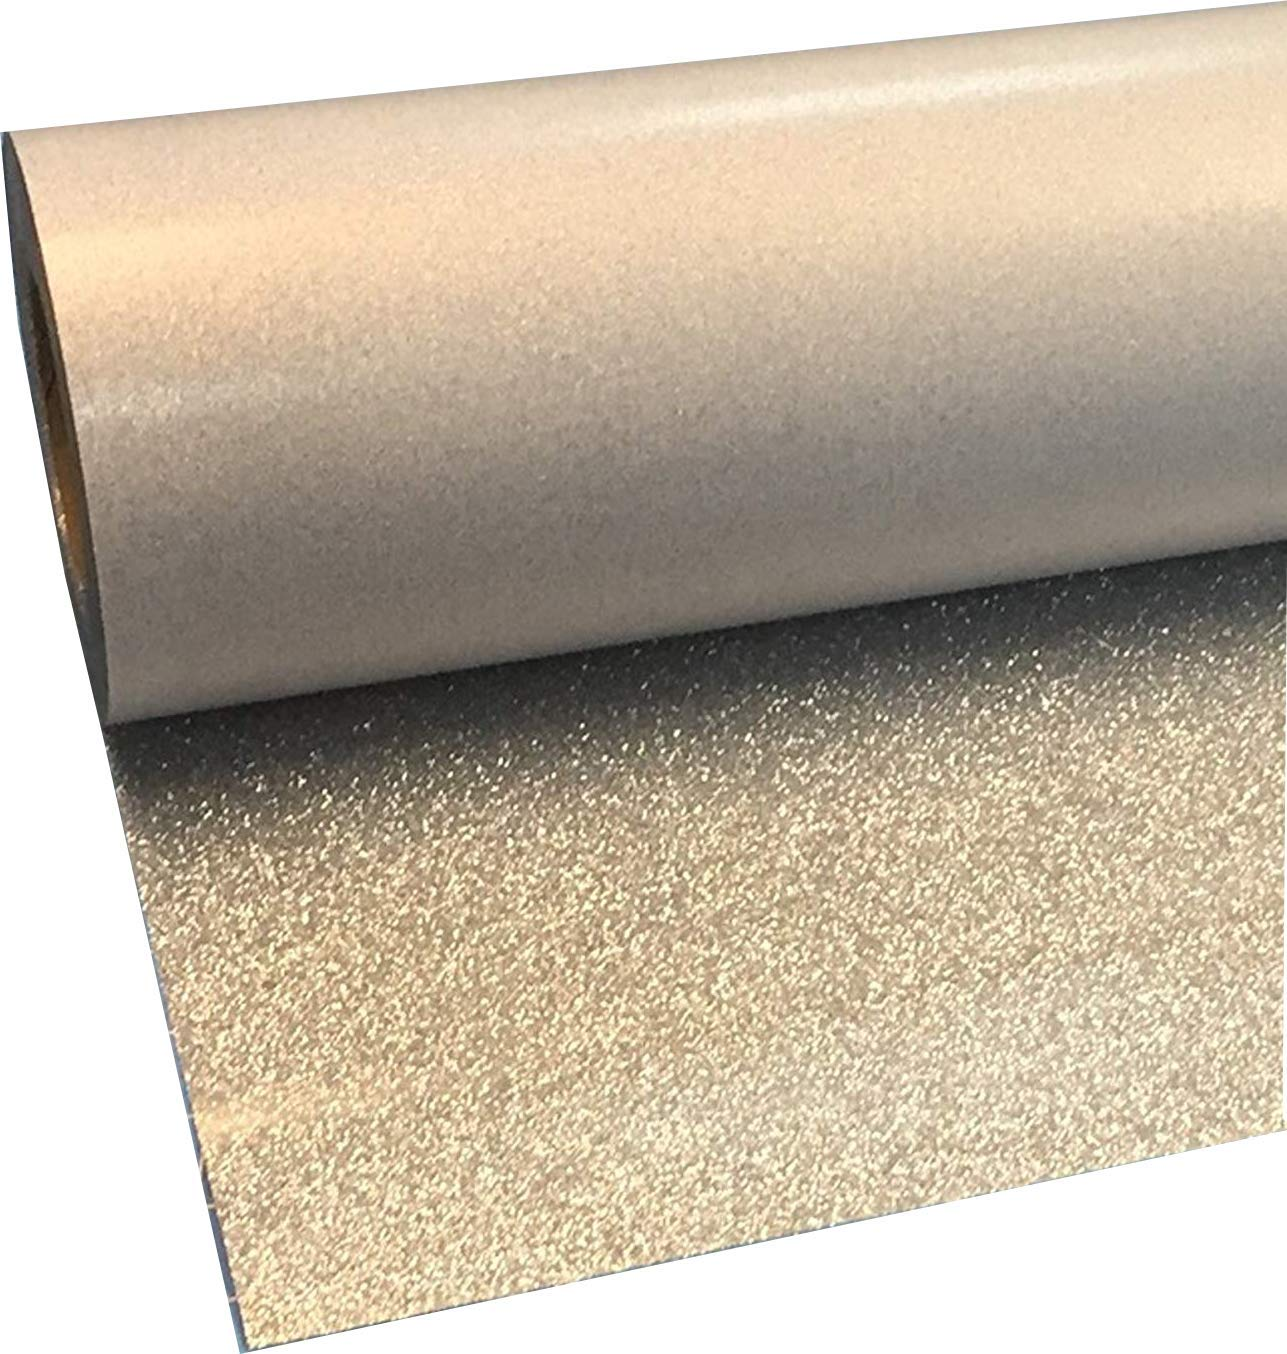 Siser Glitter Silver 20'' x 10' Iron on Heat Transfer Vinyl Roll, HTV